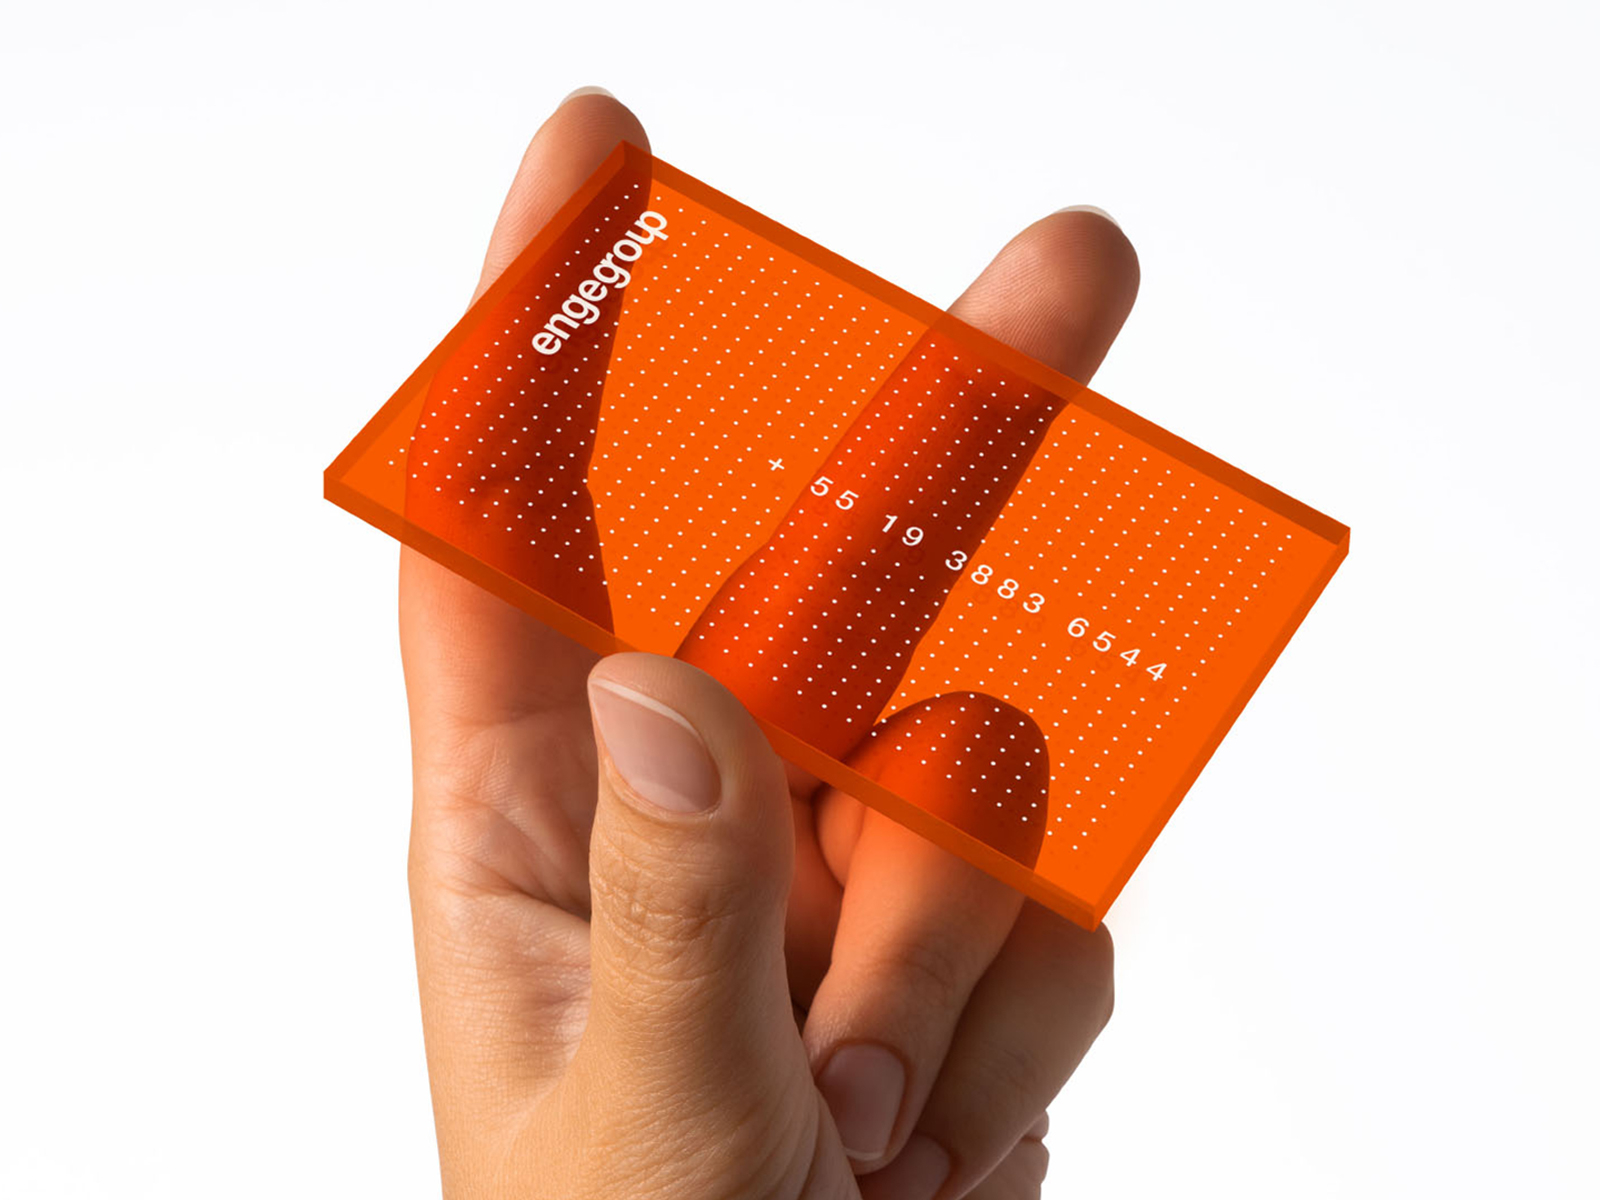 orange translucent business card with opaque white text, numbers and a dotted pattern